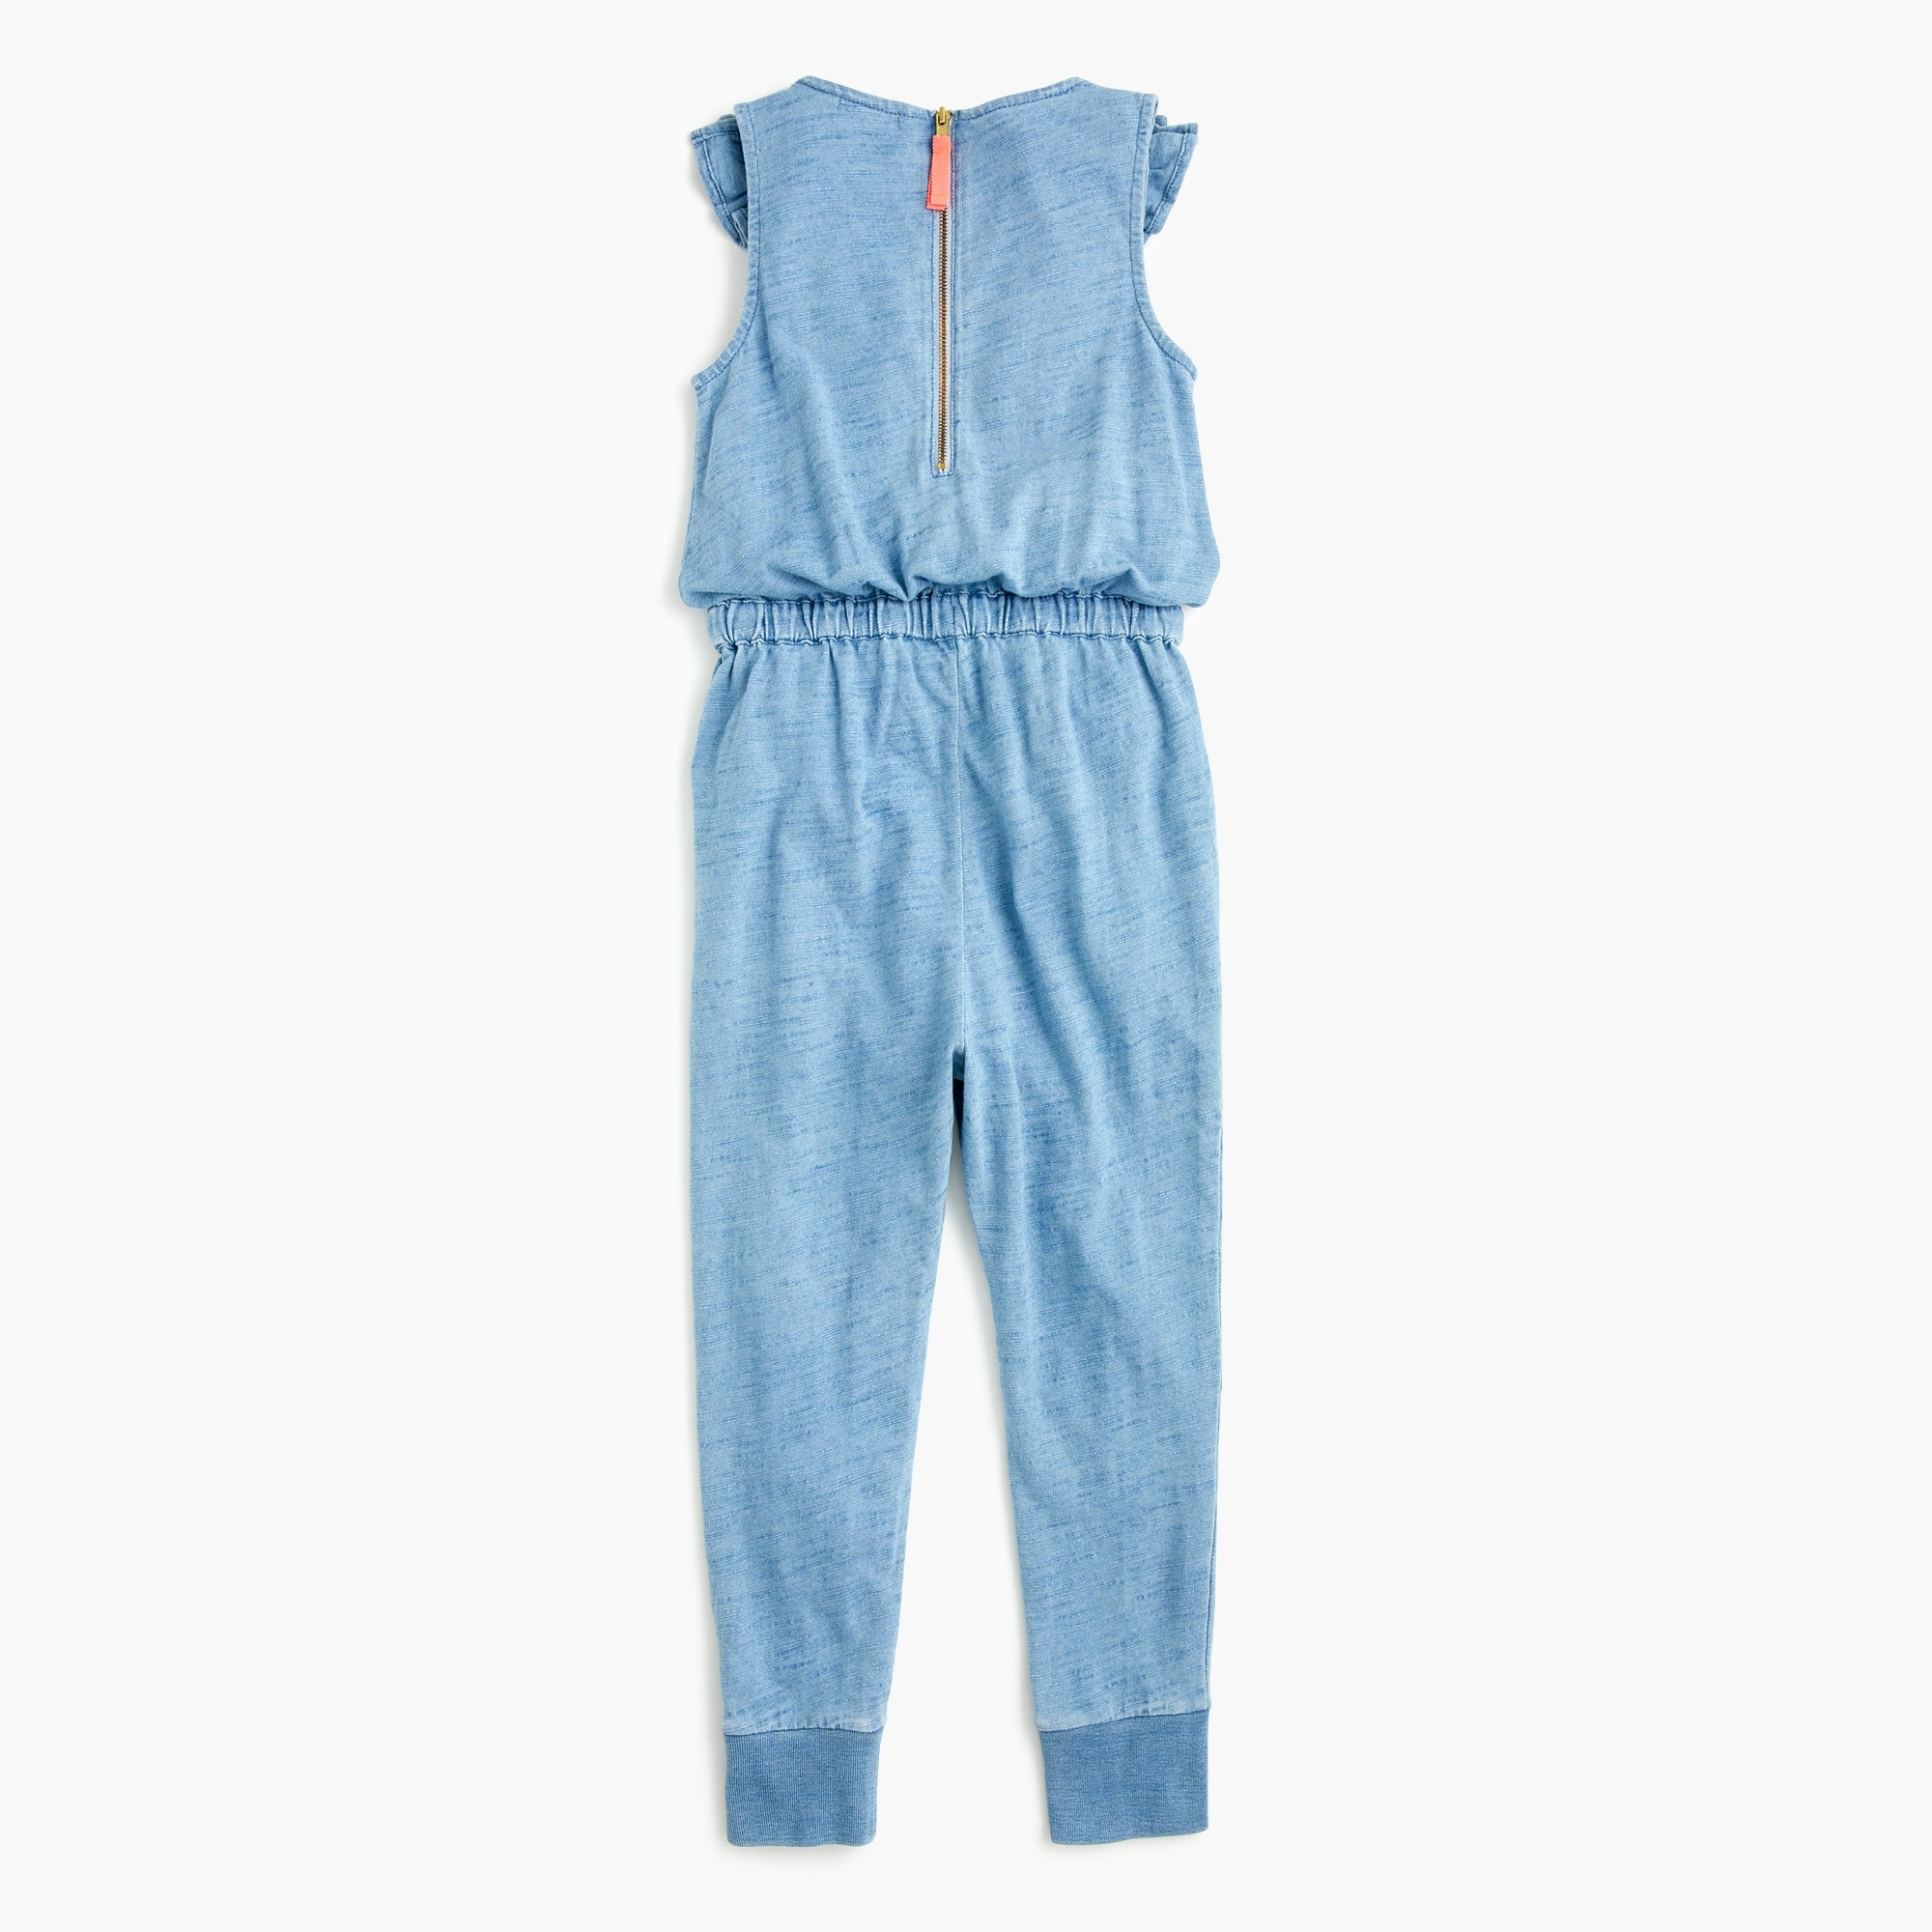 Image 2 for Girls' ruffle-trimmed jumpsuit